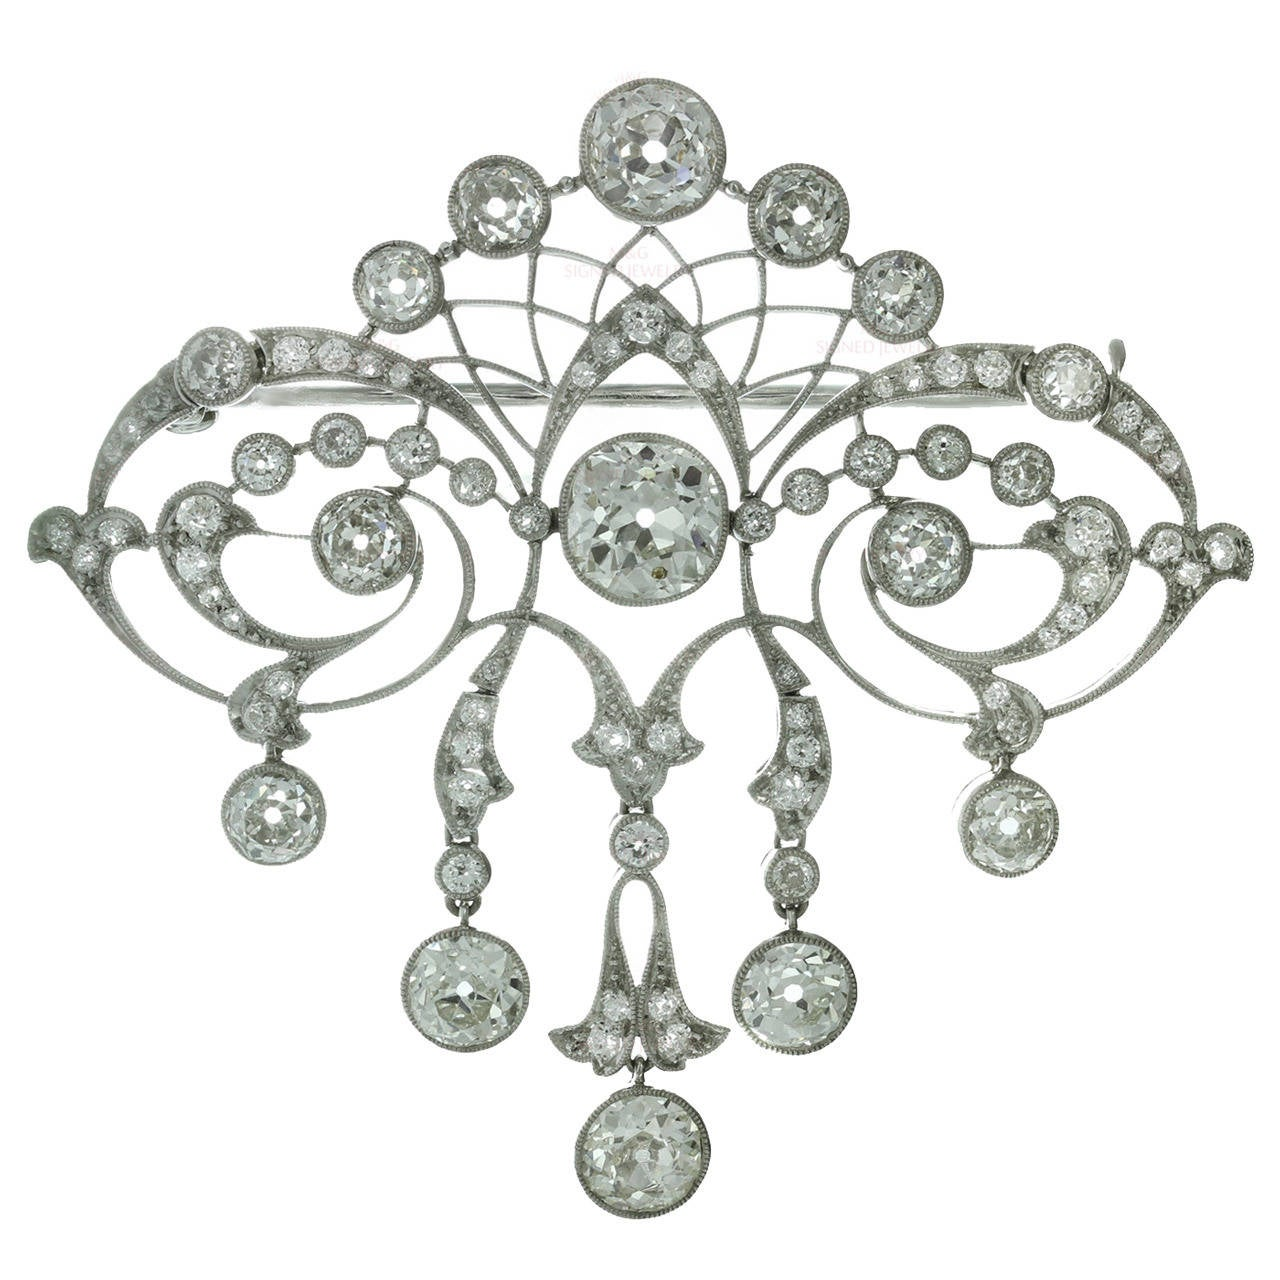 Magnificent Edwardian Diamond Platinum Filigree Brooch